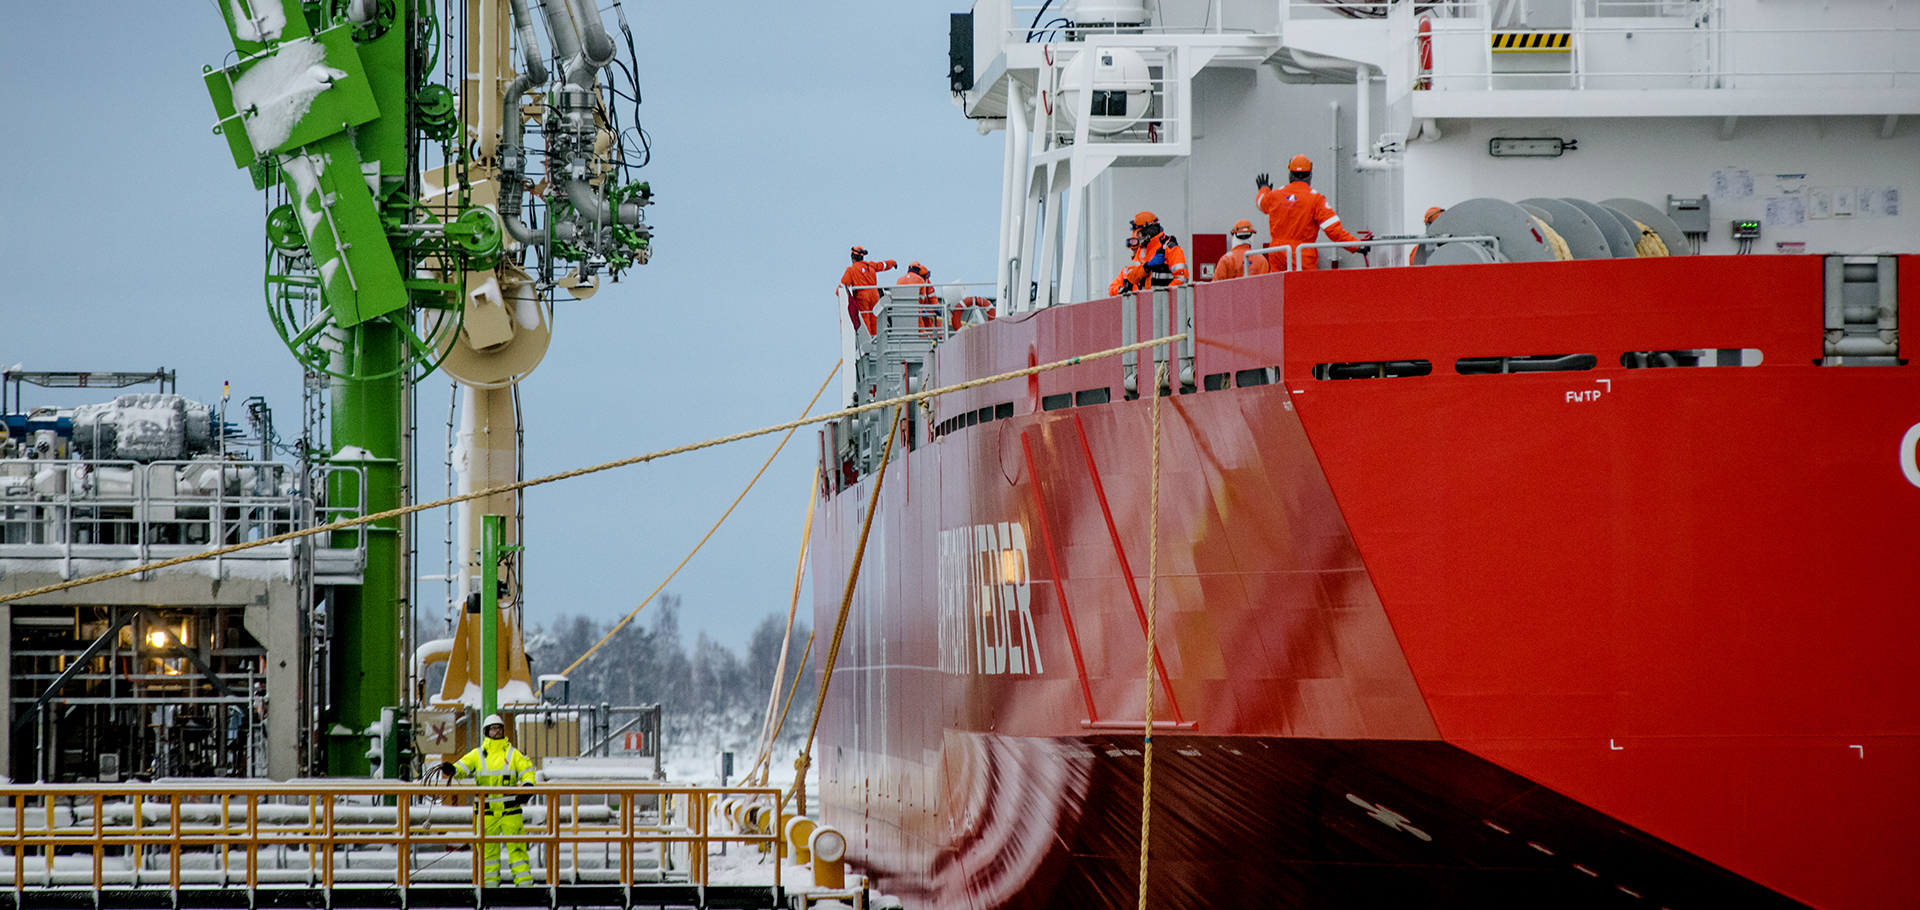 A large red ship with a few men onboard stationed at the shipyard